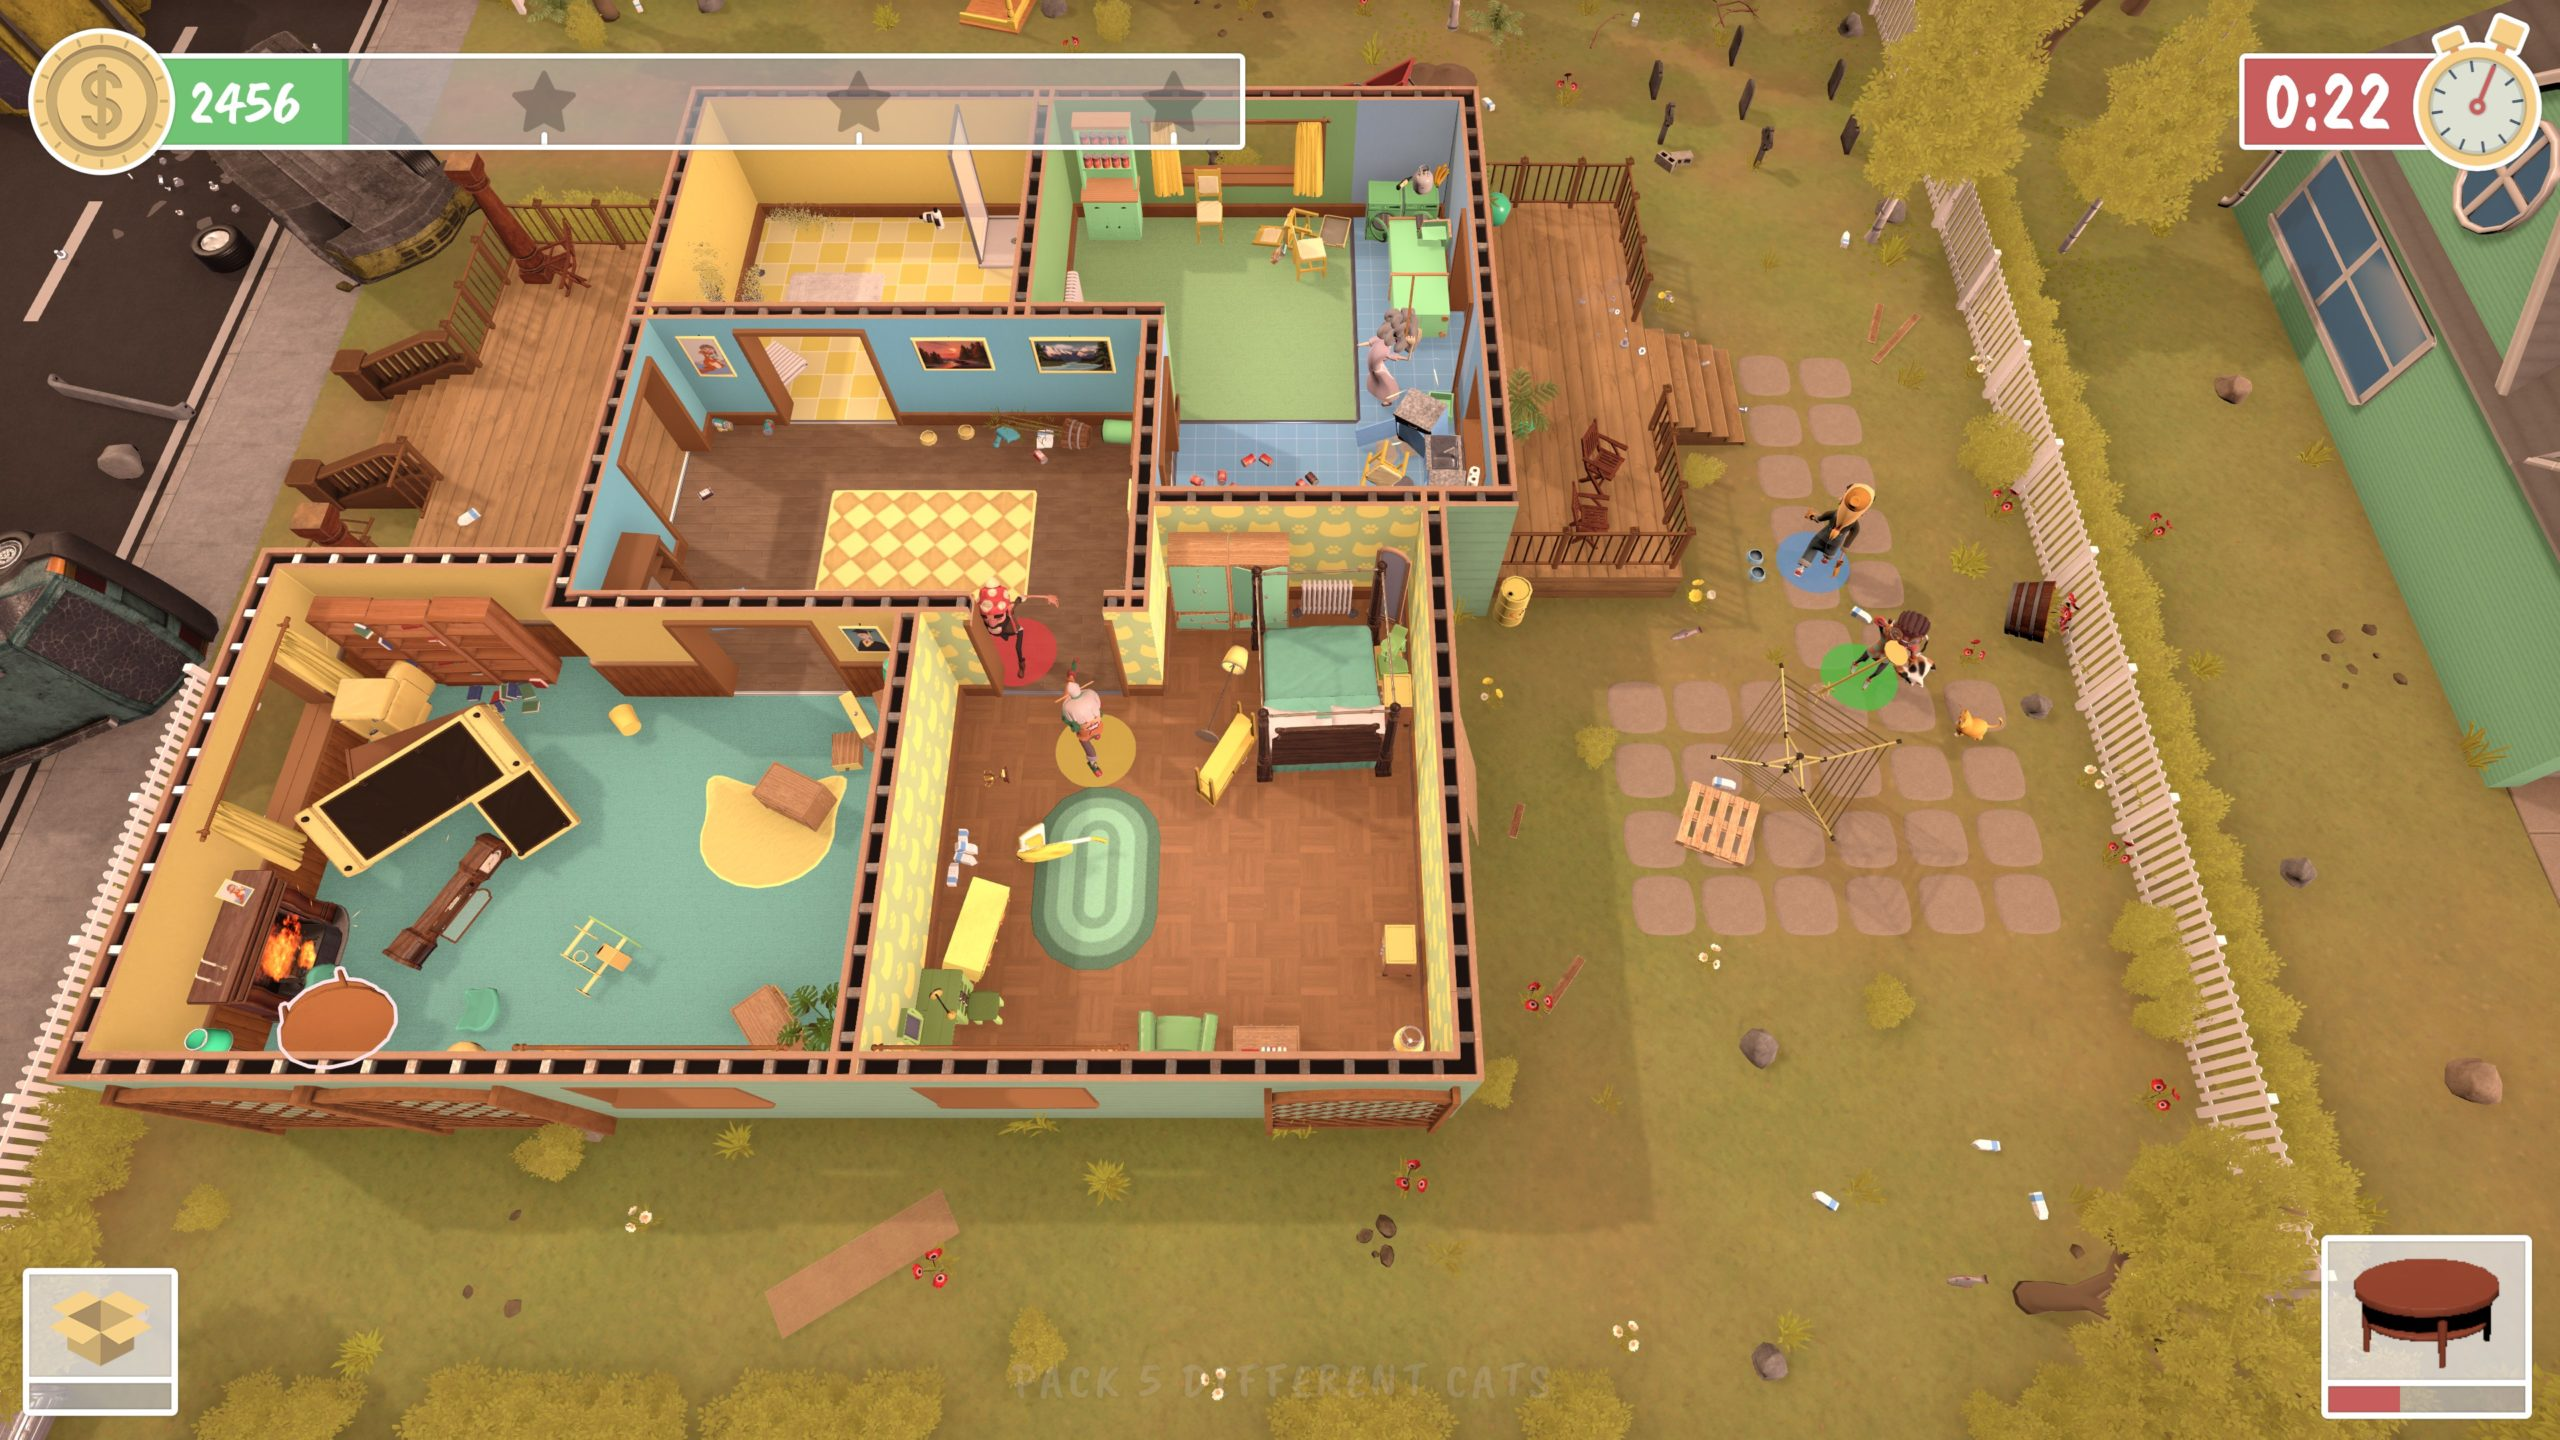 Top down view of a house with five rooms. We can see inside as the roof is removed and in the main living room, the couch has been tipped onto its front with the leg rest propping it upwards. A table has also been thrown to the side. Outside, on the patio, two characters are dragging a washing line.